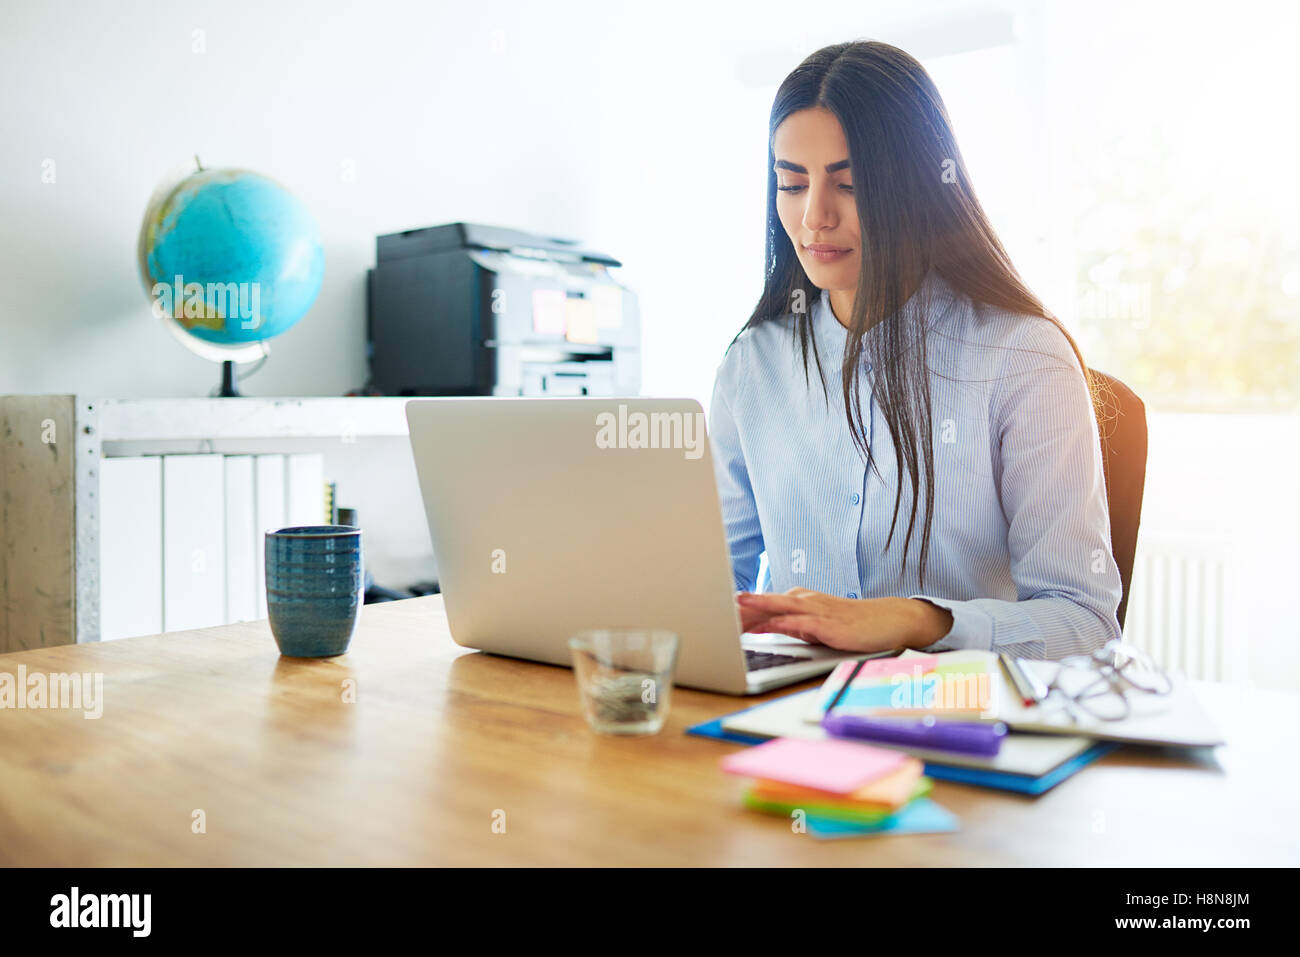 Competent young business secretary working at a laptop at a wooden desk surrounded by colorful memo notes to organise - Stock Image